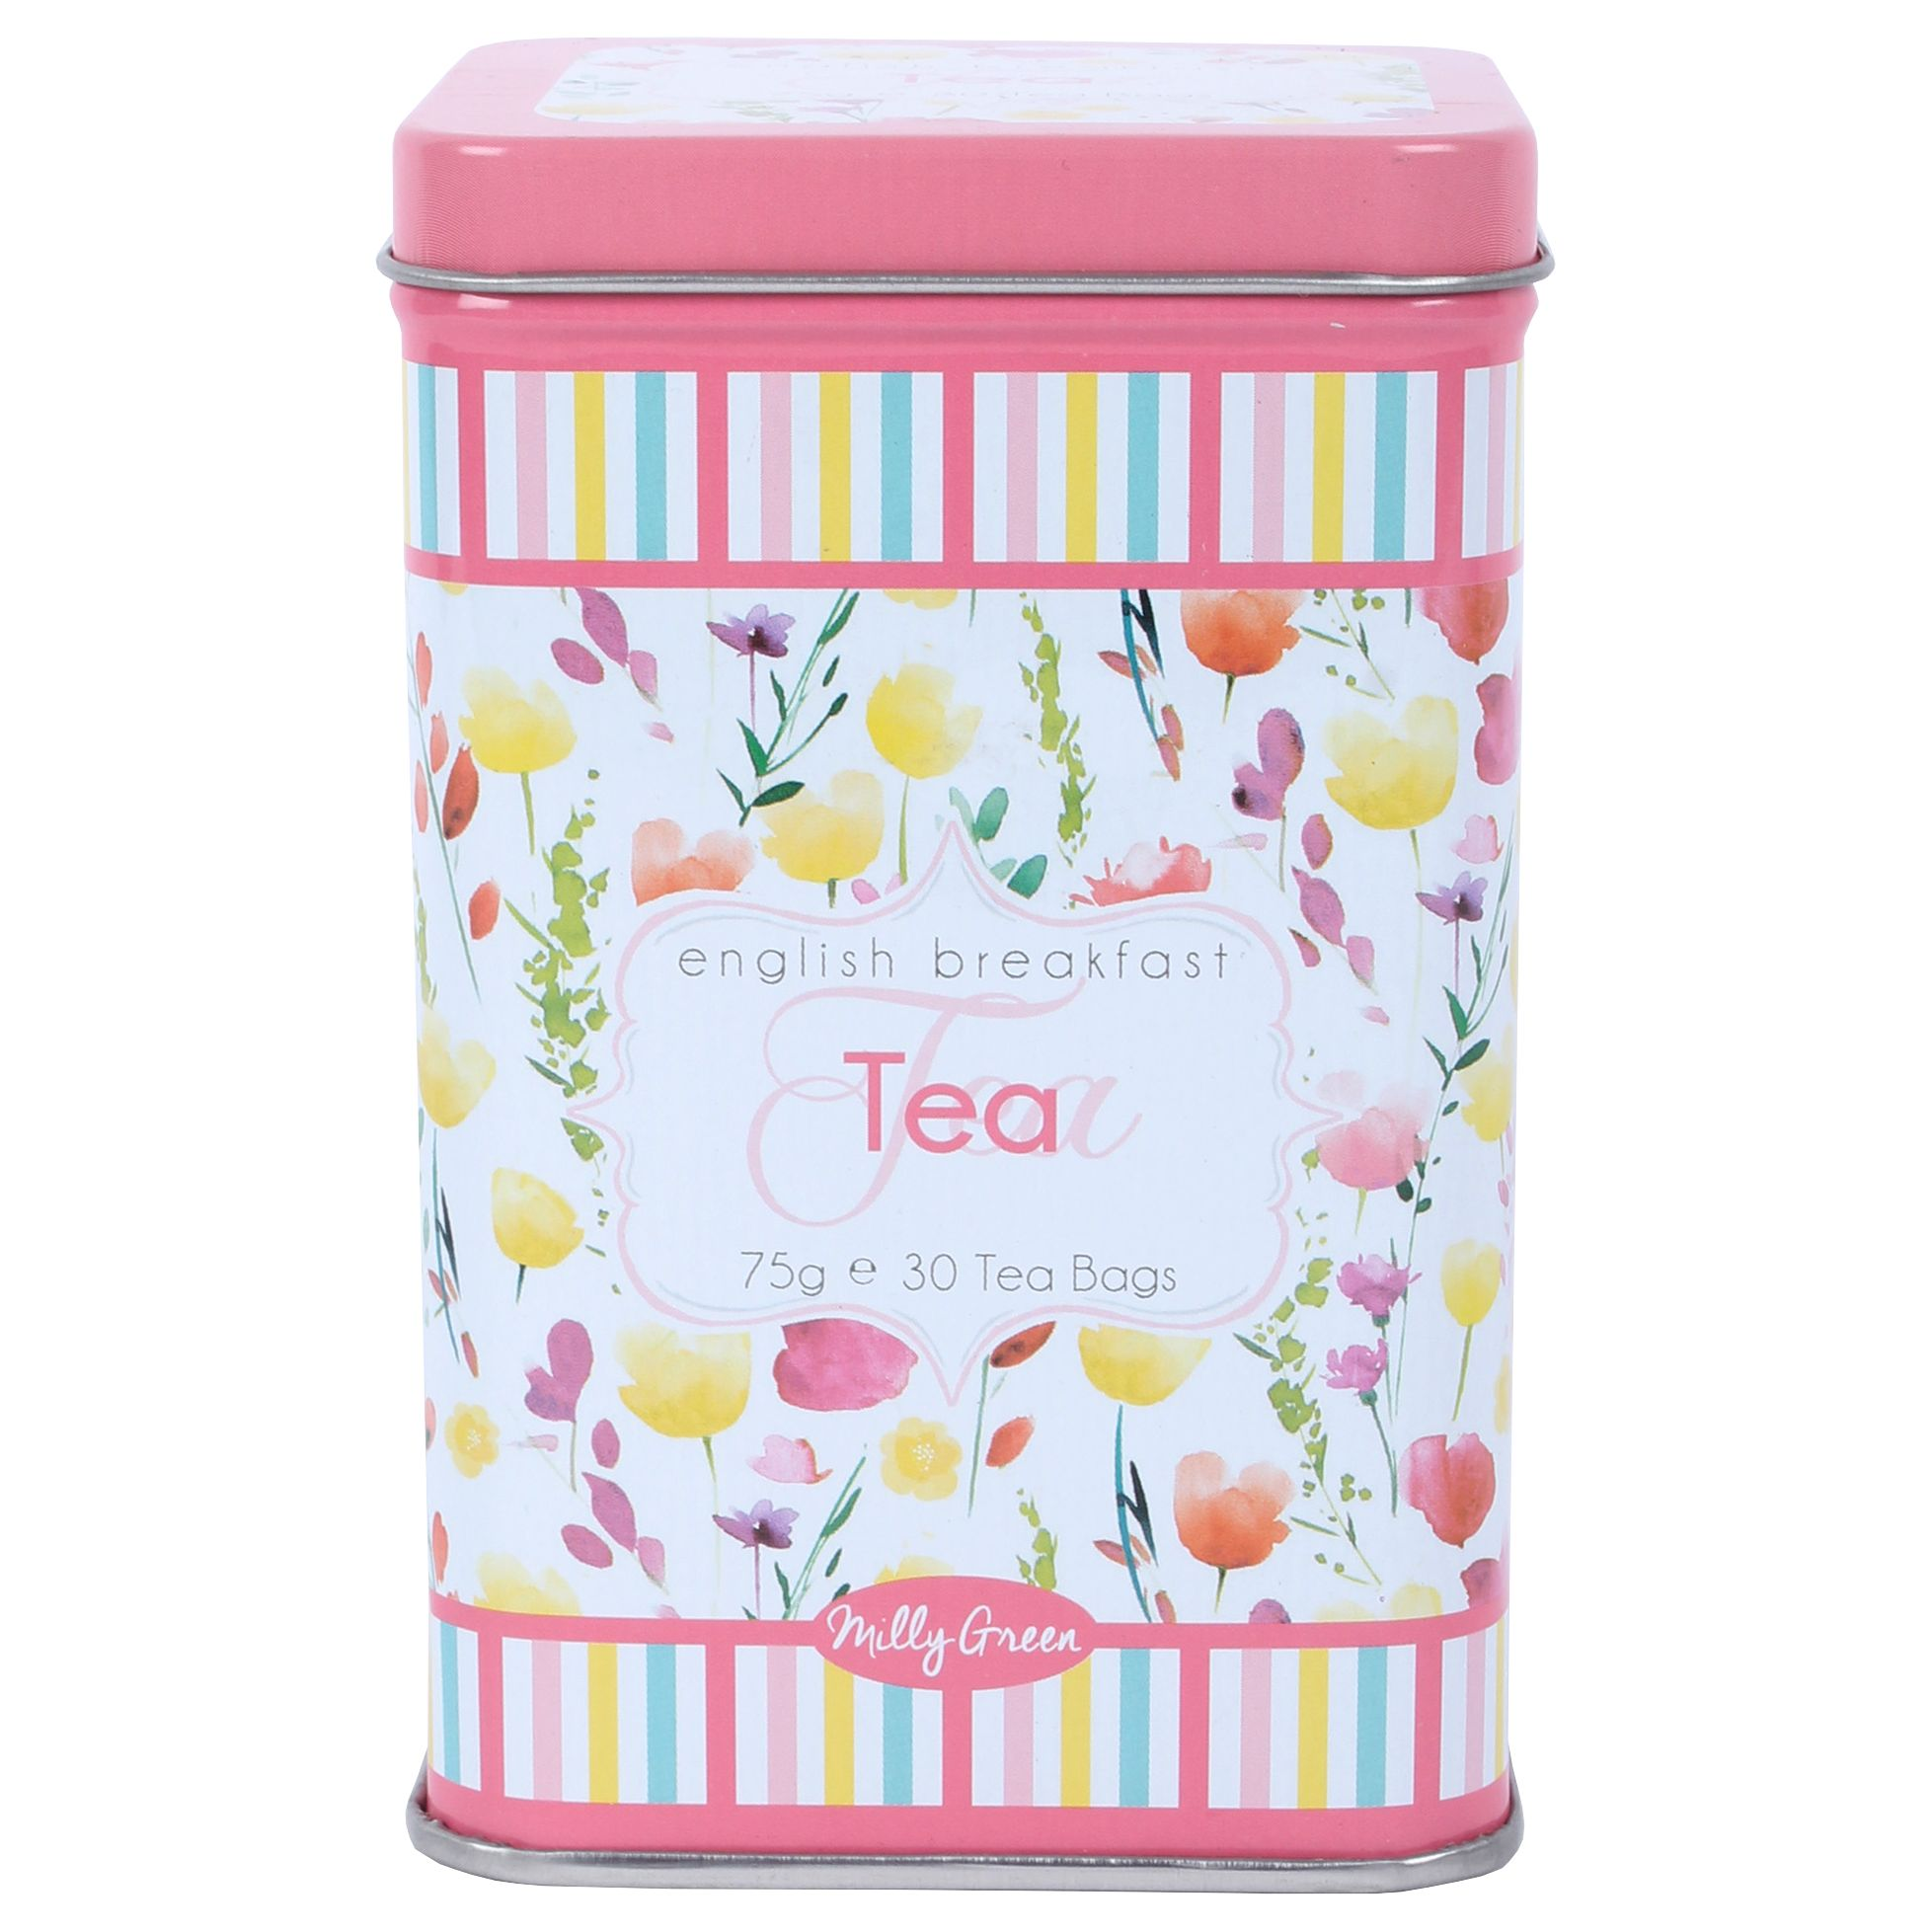 Milly Green Milly Green English Breakfast Tea In A Floral Tin, 75g